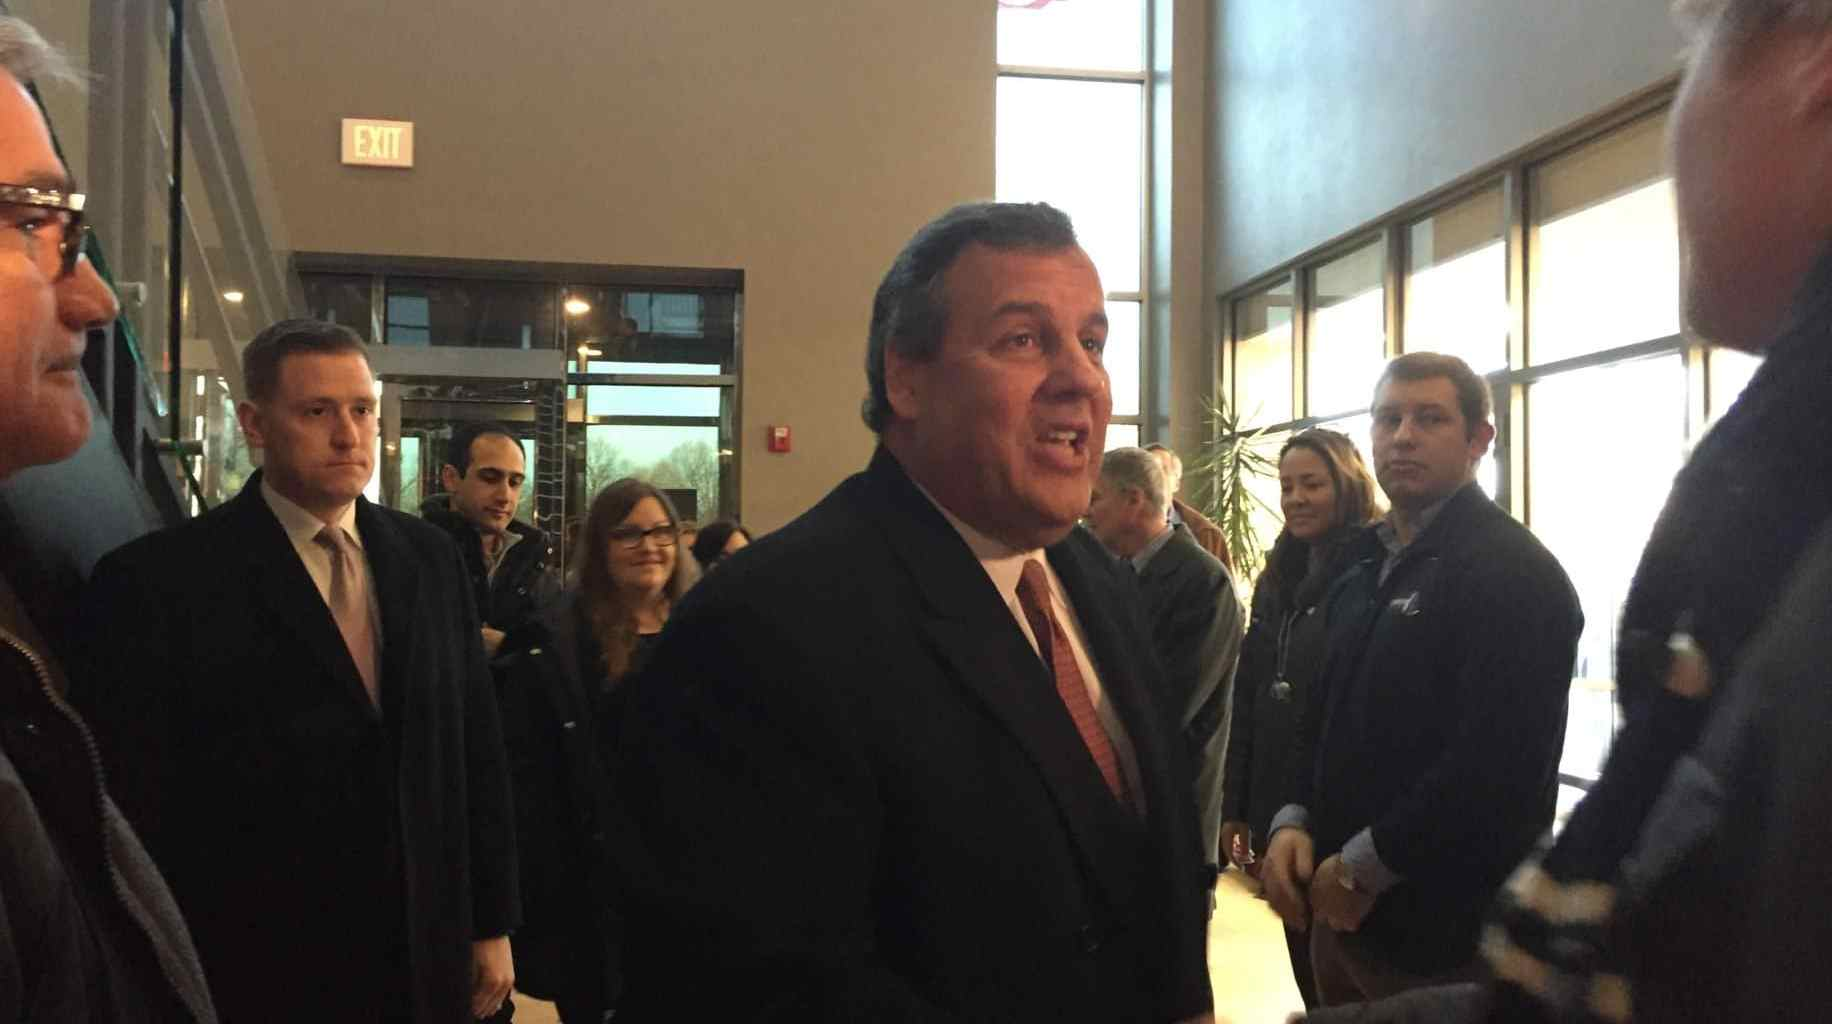 New Jersey Governor Chris Christie greets supporters in Johnston, Iowa.